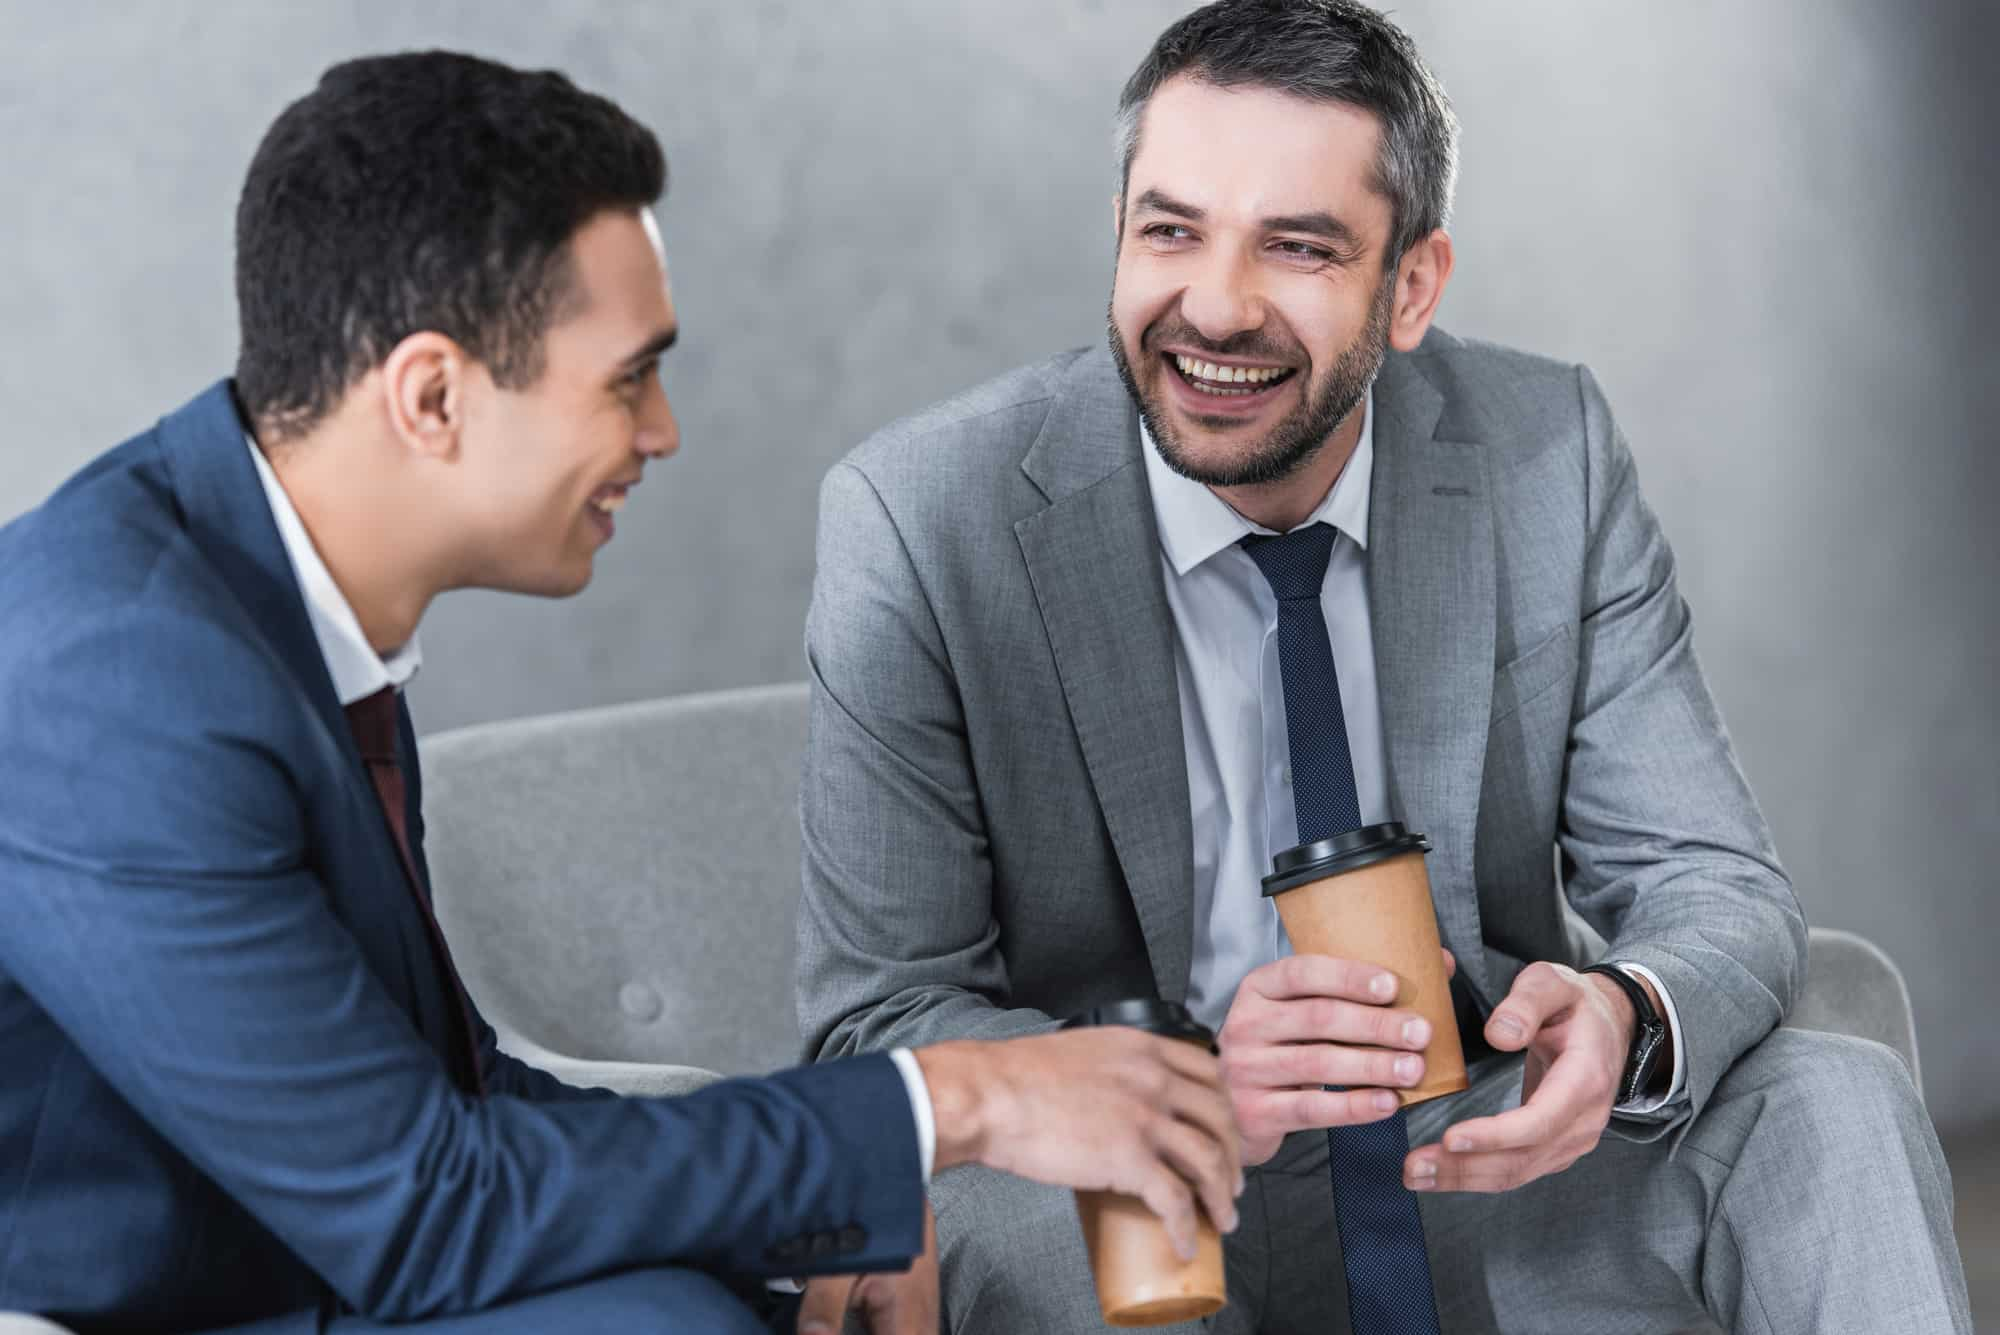 How can a retail executive benefit from coaching and mentoring?